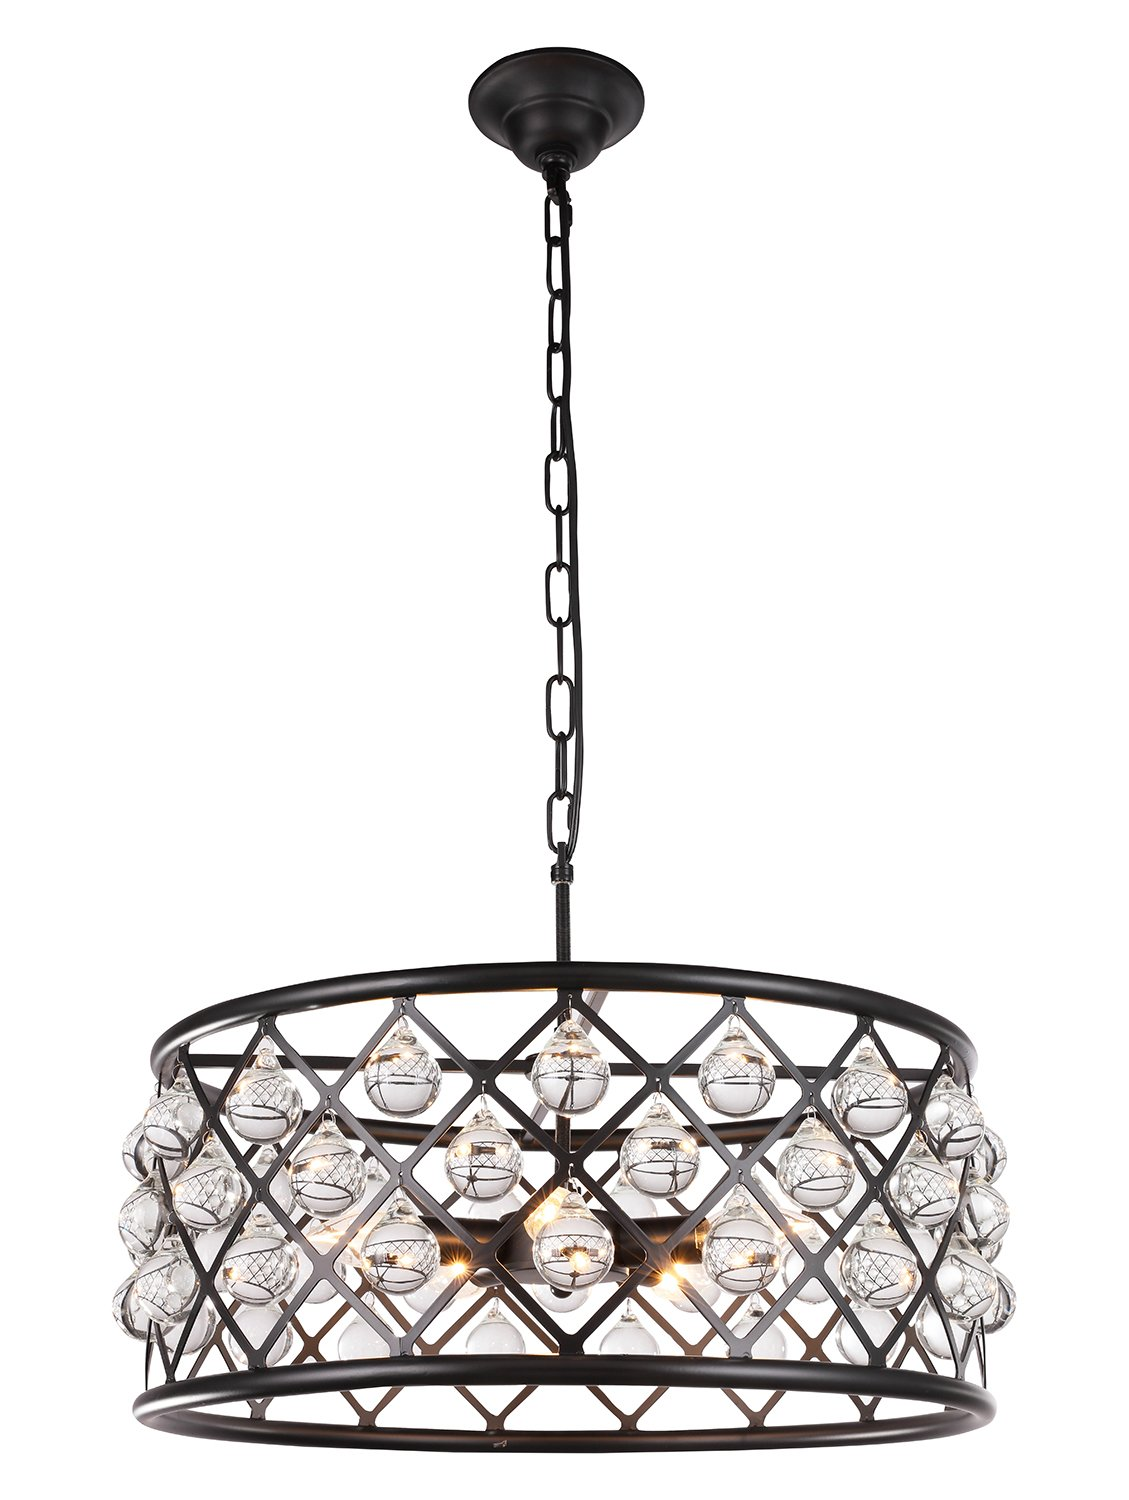 Dst Matte Black K9 Crystal Pendant Chandelier Ceiling Lighting Fixture for Living Room, Kitchen, Dining Room and so on, Φ: 50cm/19.69'',H:22cm /8.66''. Chain length: 30cm/pc, 2pcs Chain